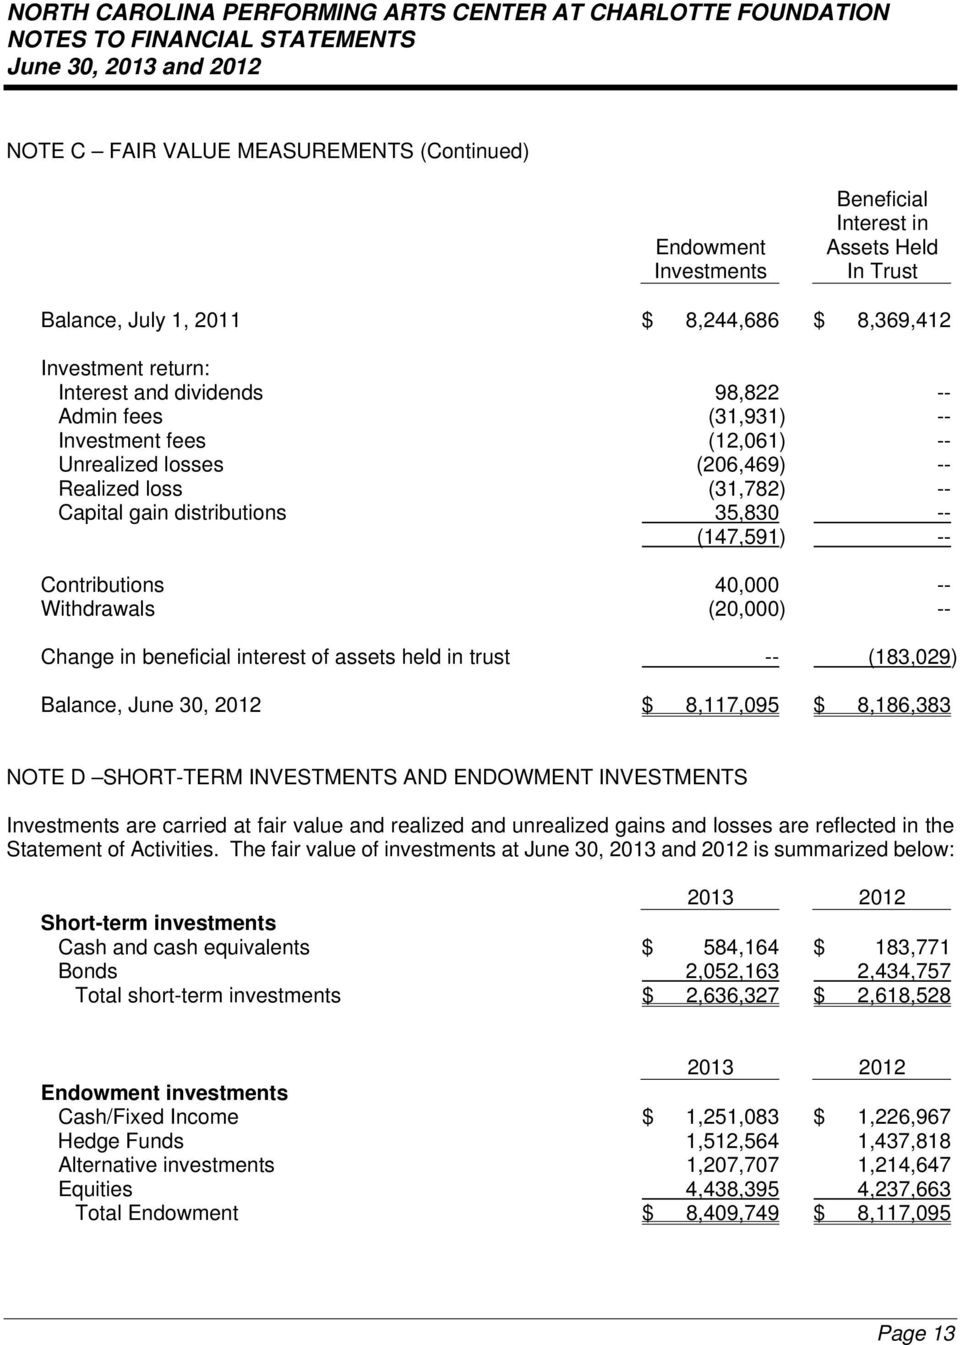 Withdrawals (20,000) -- Change in beneficial interest of assets held in trust -- (183,029) Balance, June 30, 2012 $ 8,117,095 $ 8,186,383 NOTE D SHORT-TERM INVESTMENTS AND ENDOWMENT INVESTMENTS